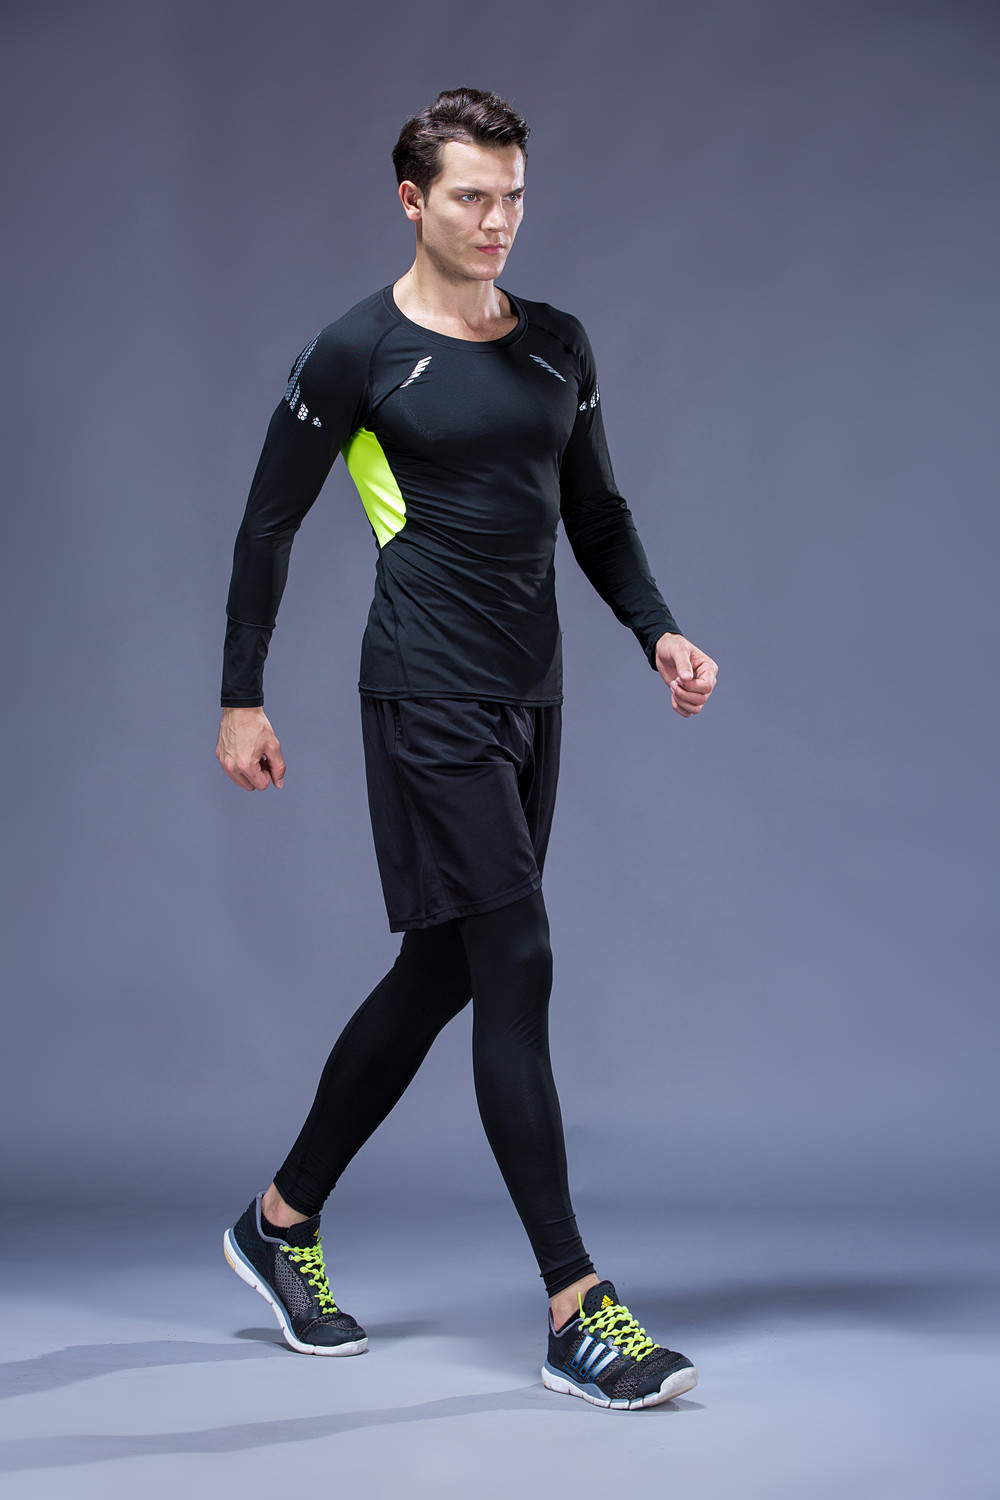 Foto from the left on men 5 pcs compressions clothes for gym. Men's 5 pcs compression tracksuit sports